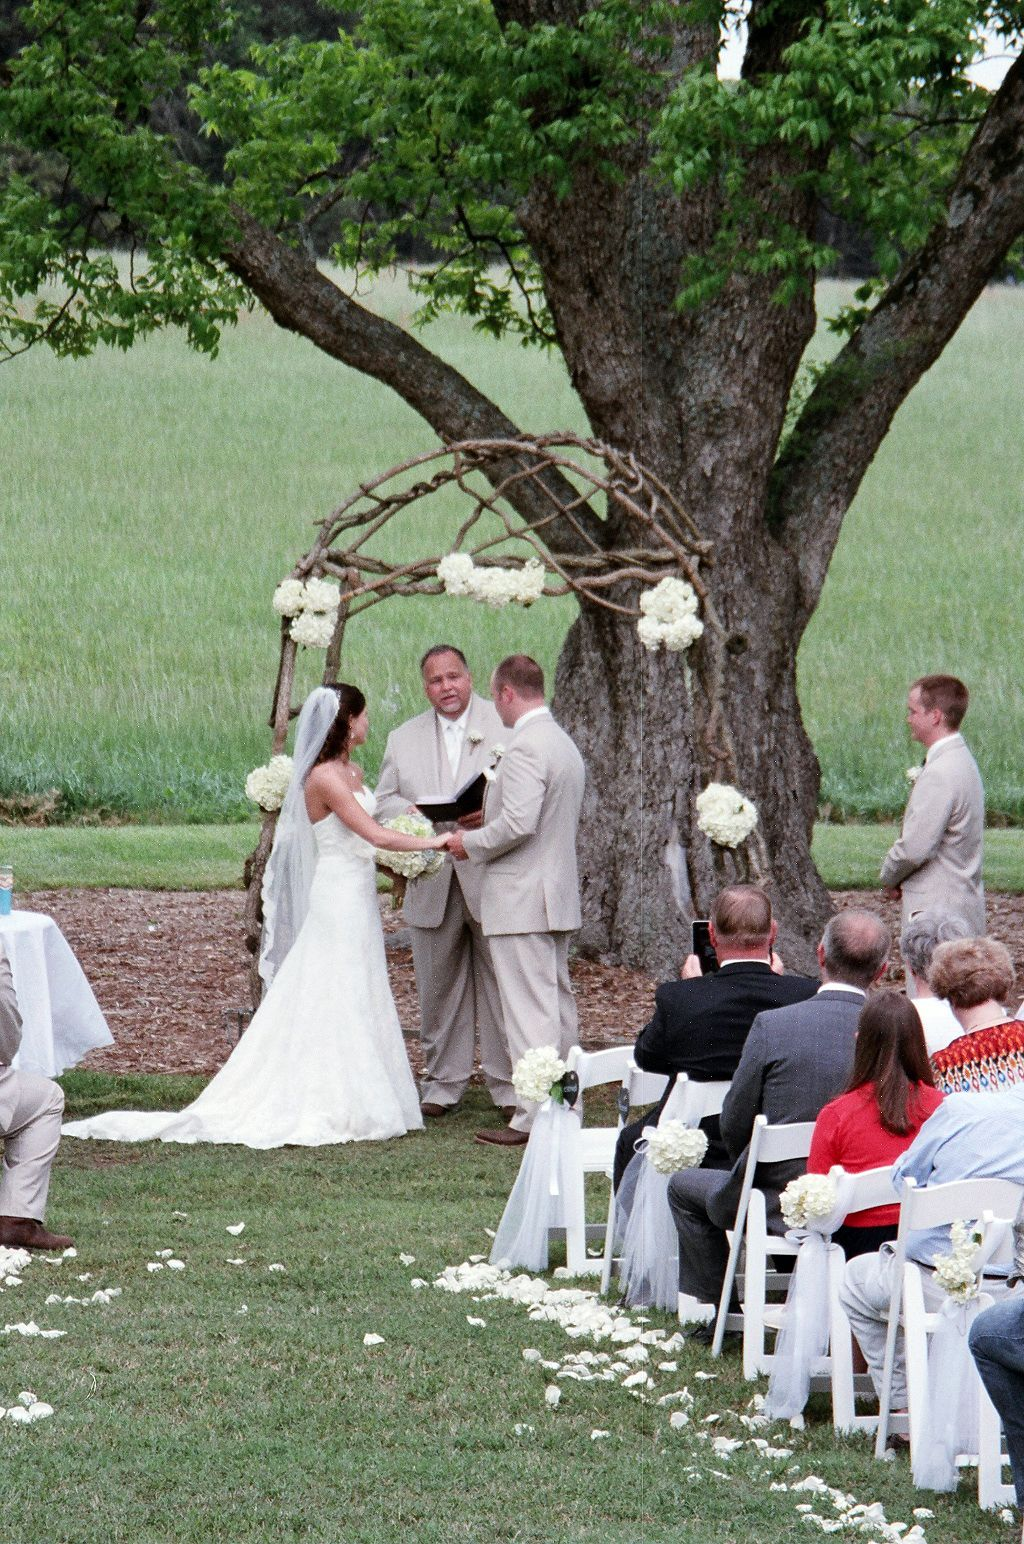 Wedding ceremony under a lovely rustic arbor with hydrangeas at Lenora's Legacy in South Carolina. http://www.lenoraslegacy.com/